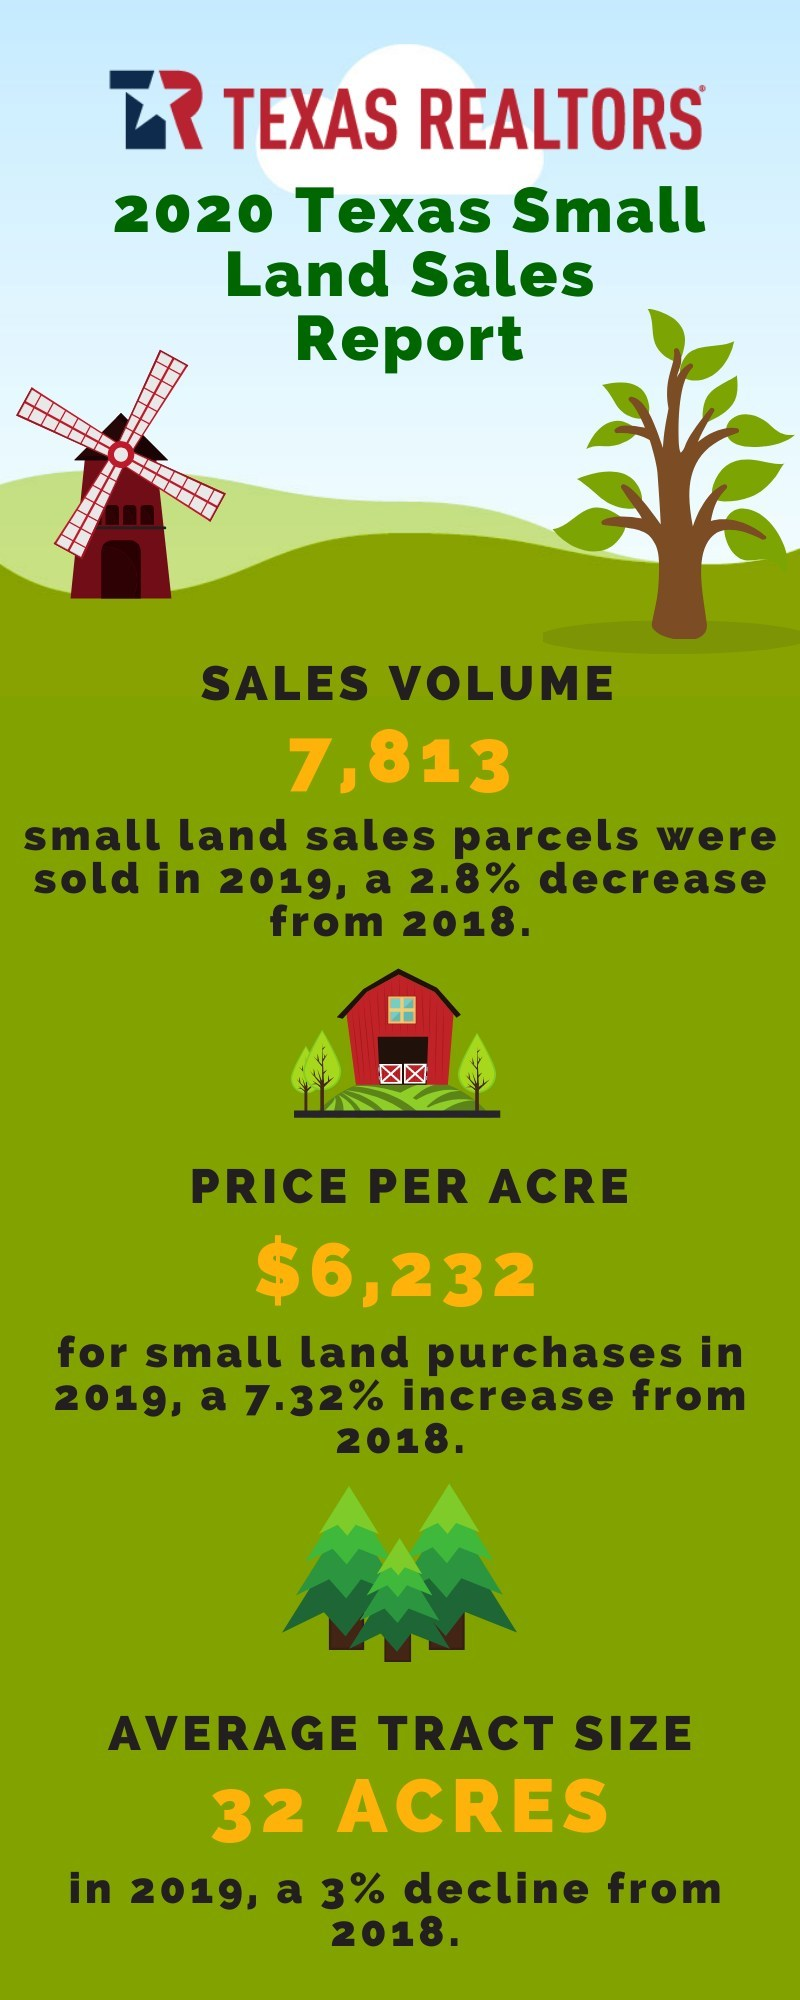 Texas REALTORS® 2020 Texas Small Land Sales Report